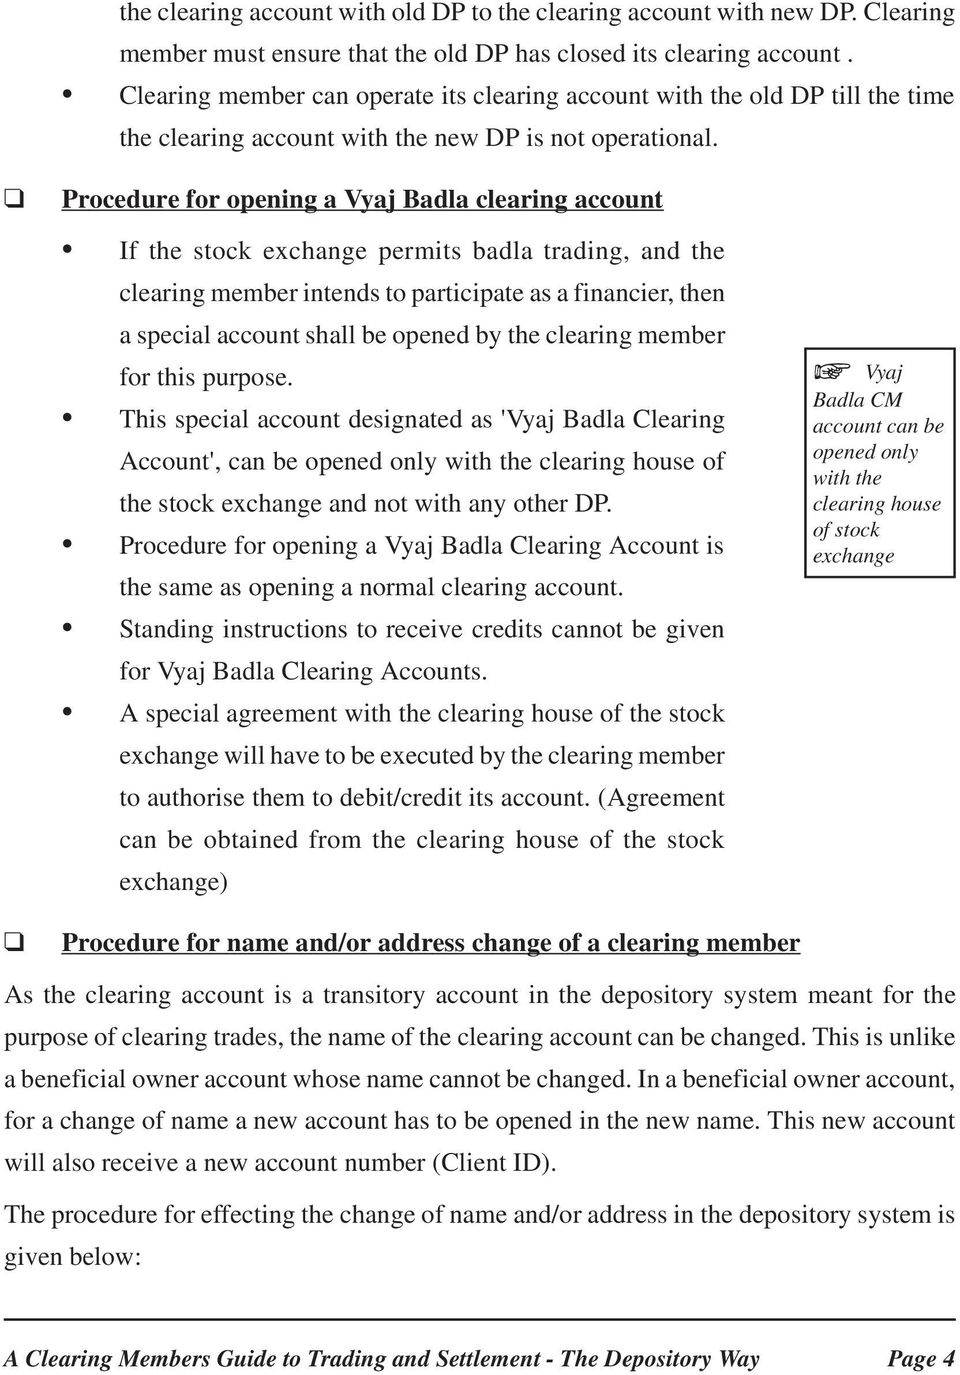 q Procedure for opening a Vyaj Badla clearing account If the stock exchange permits badla trading, and the clearing member intends to participate as a financier, then a special account shall be